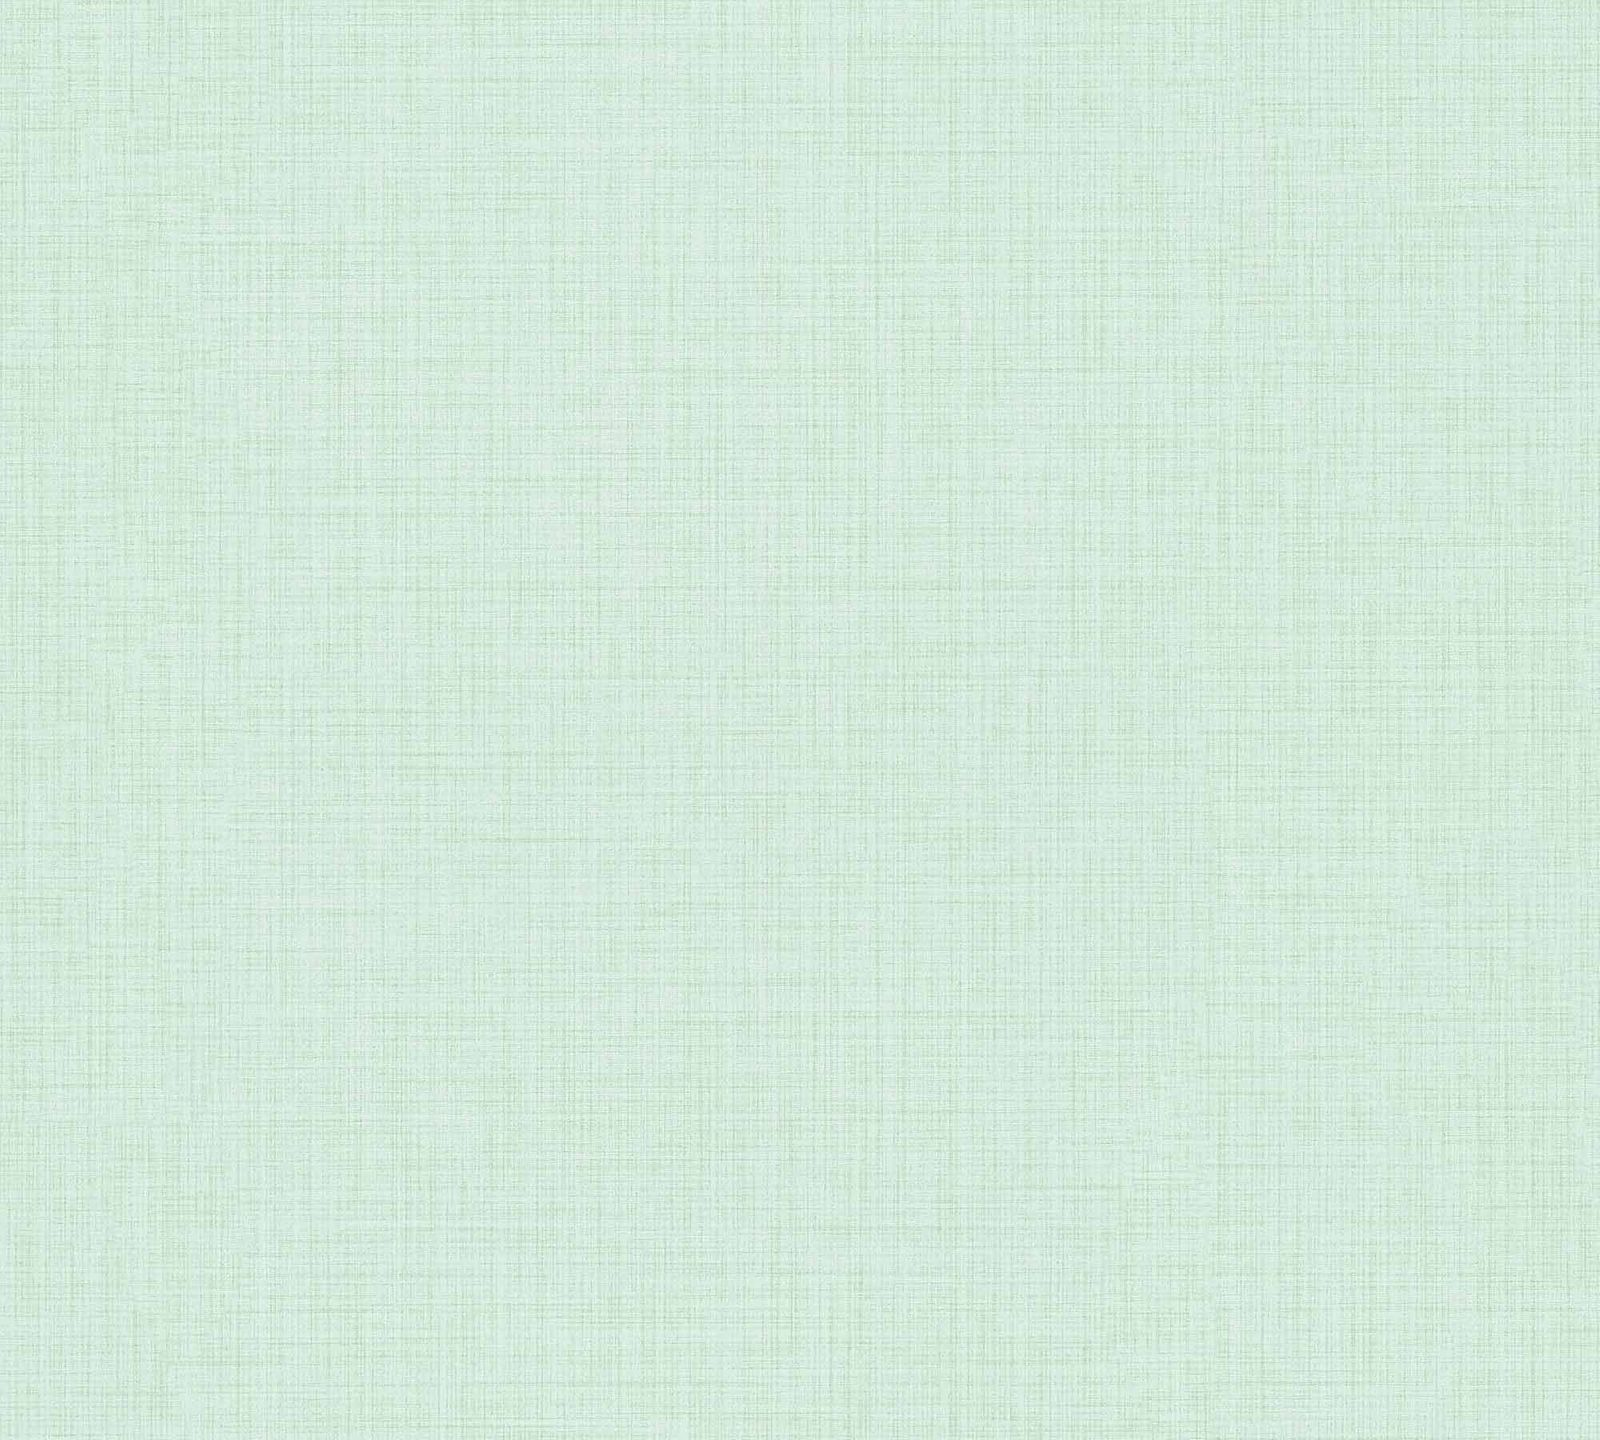 Designer Wallpaper Michalsky plain textile green 36517-2 001